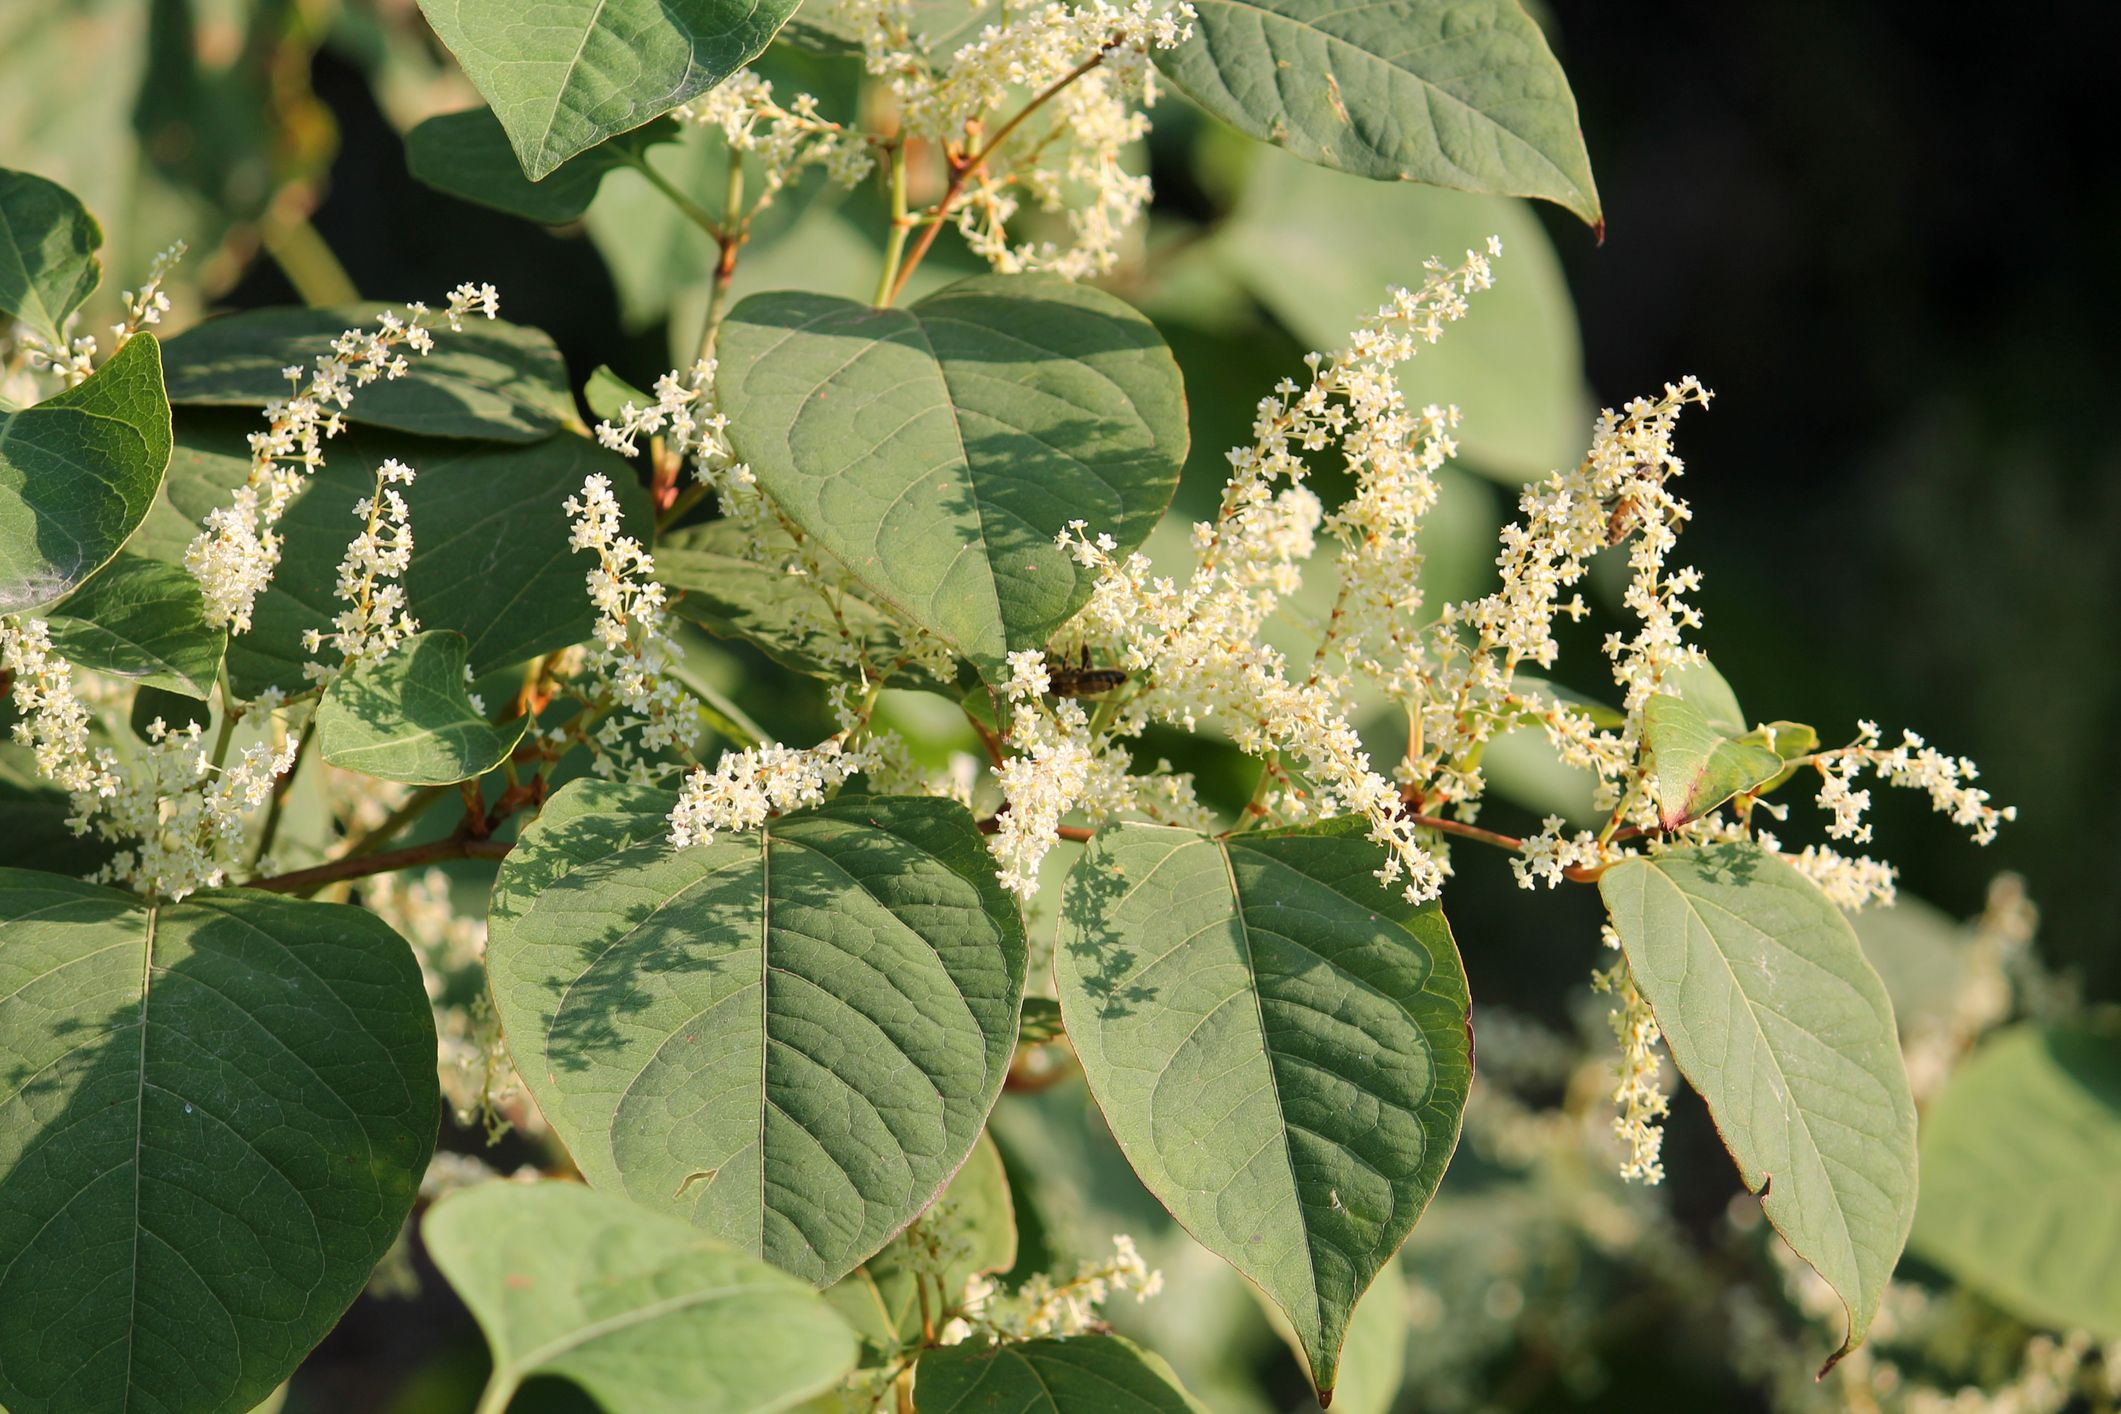 These are the Japanese knotweed hotspots in the UK